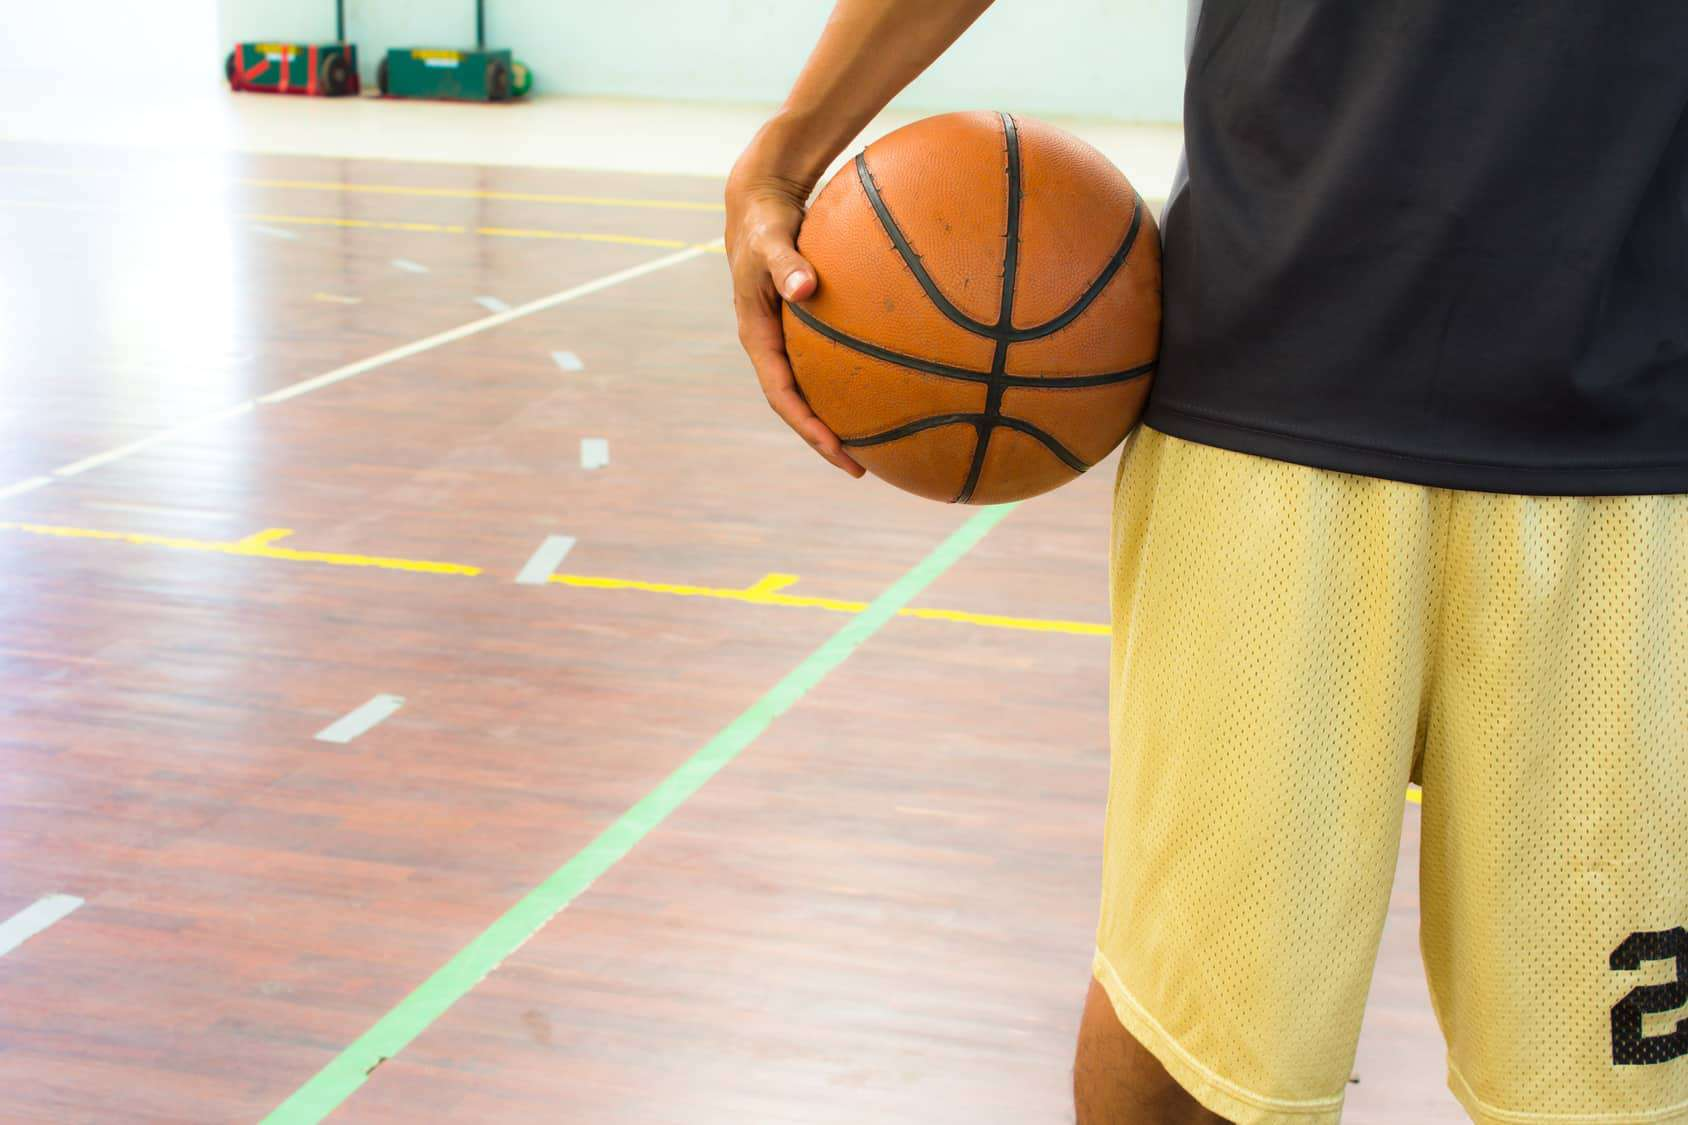 Player with basketball ball in gym